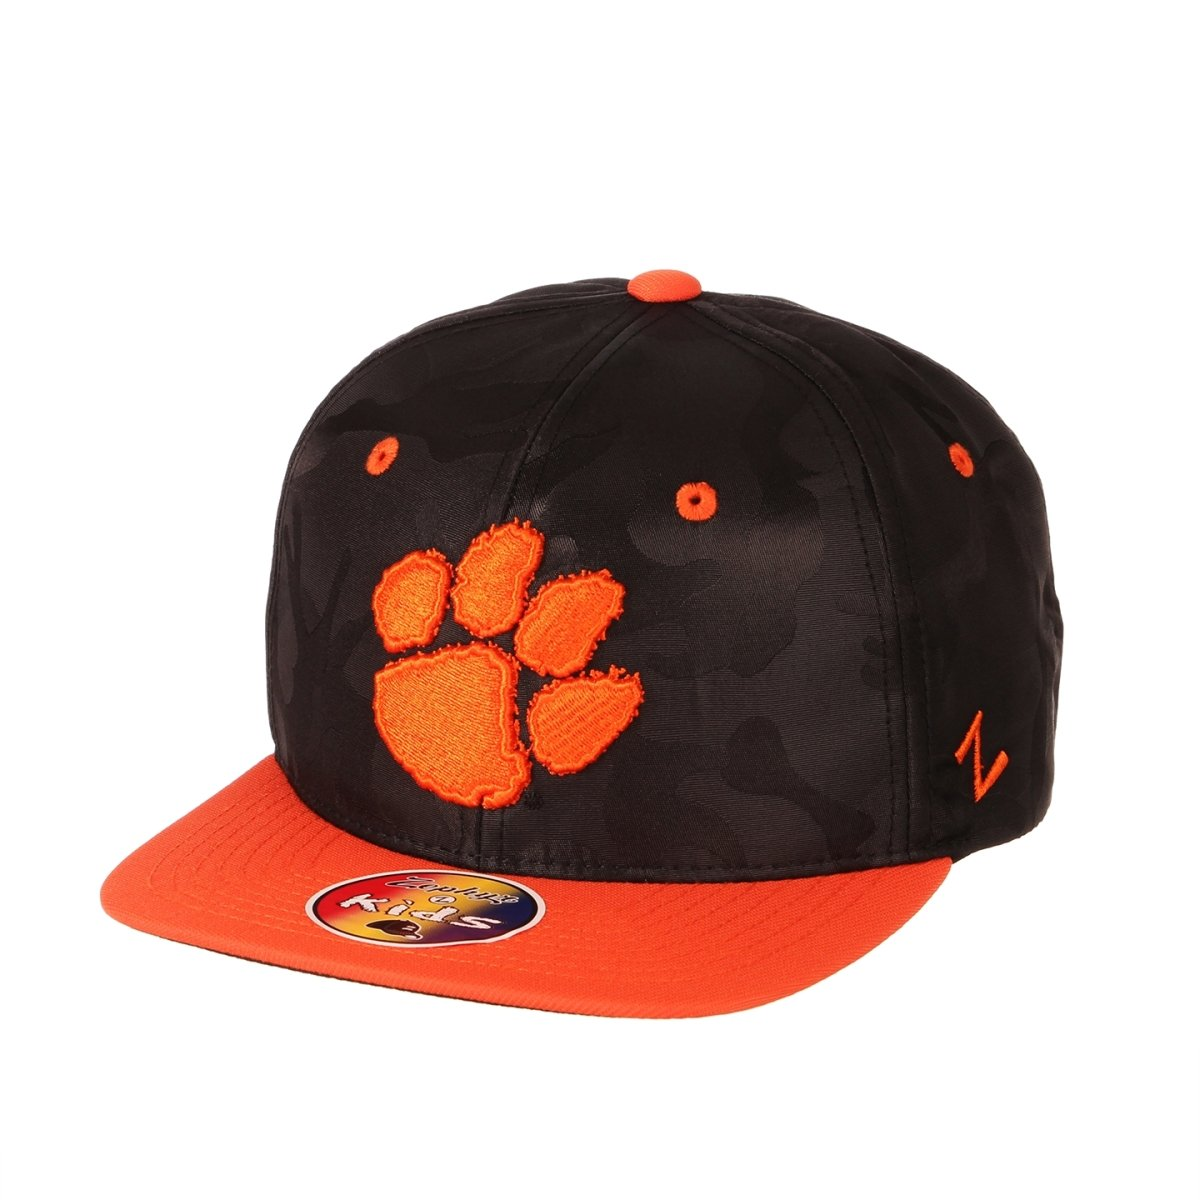 Clemson Tigers Sawyer Black Camo Youth Snapback - Black/orange - Mr. Knickerbocker